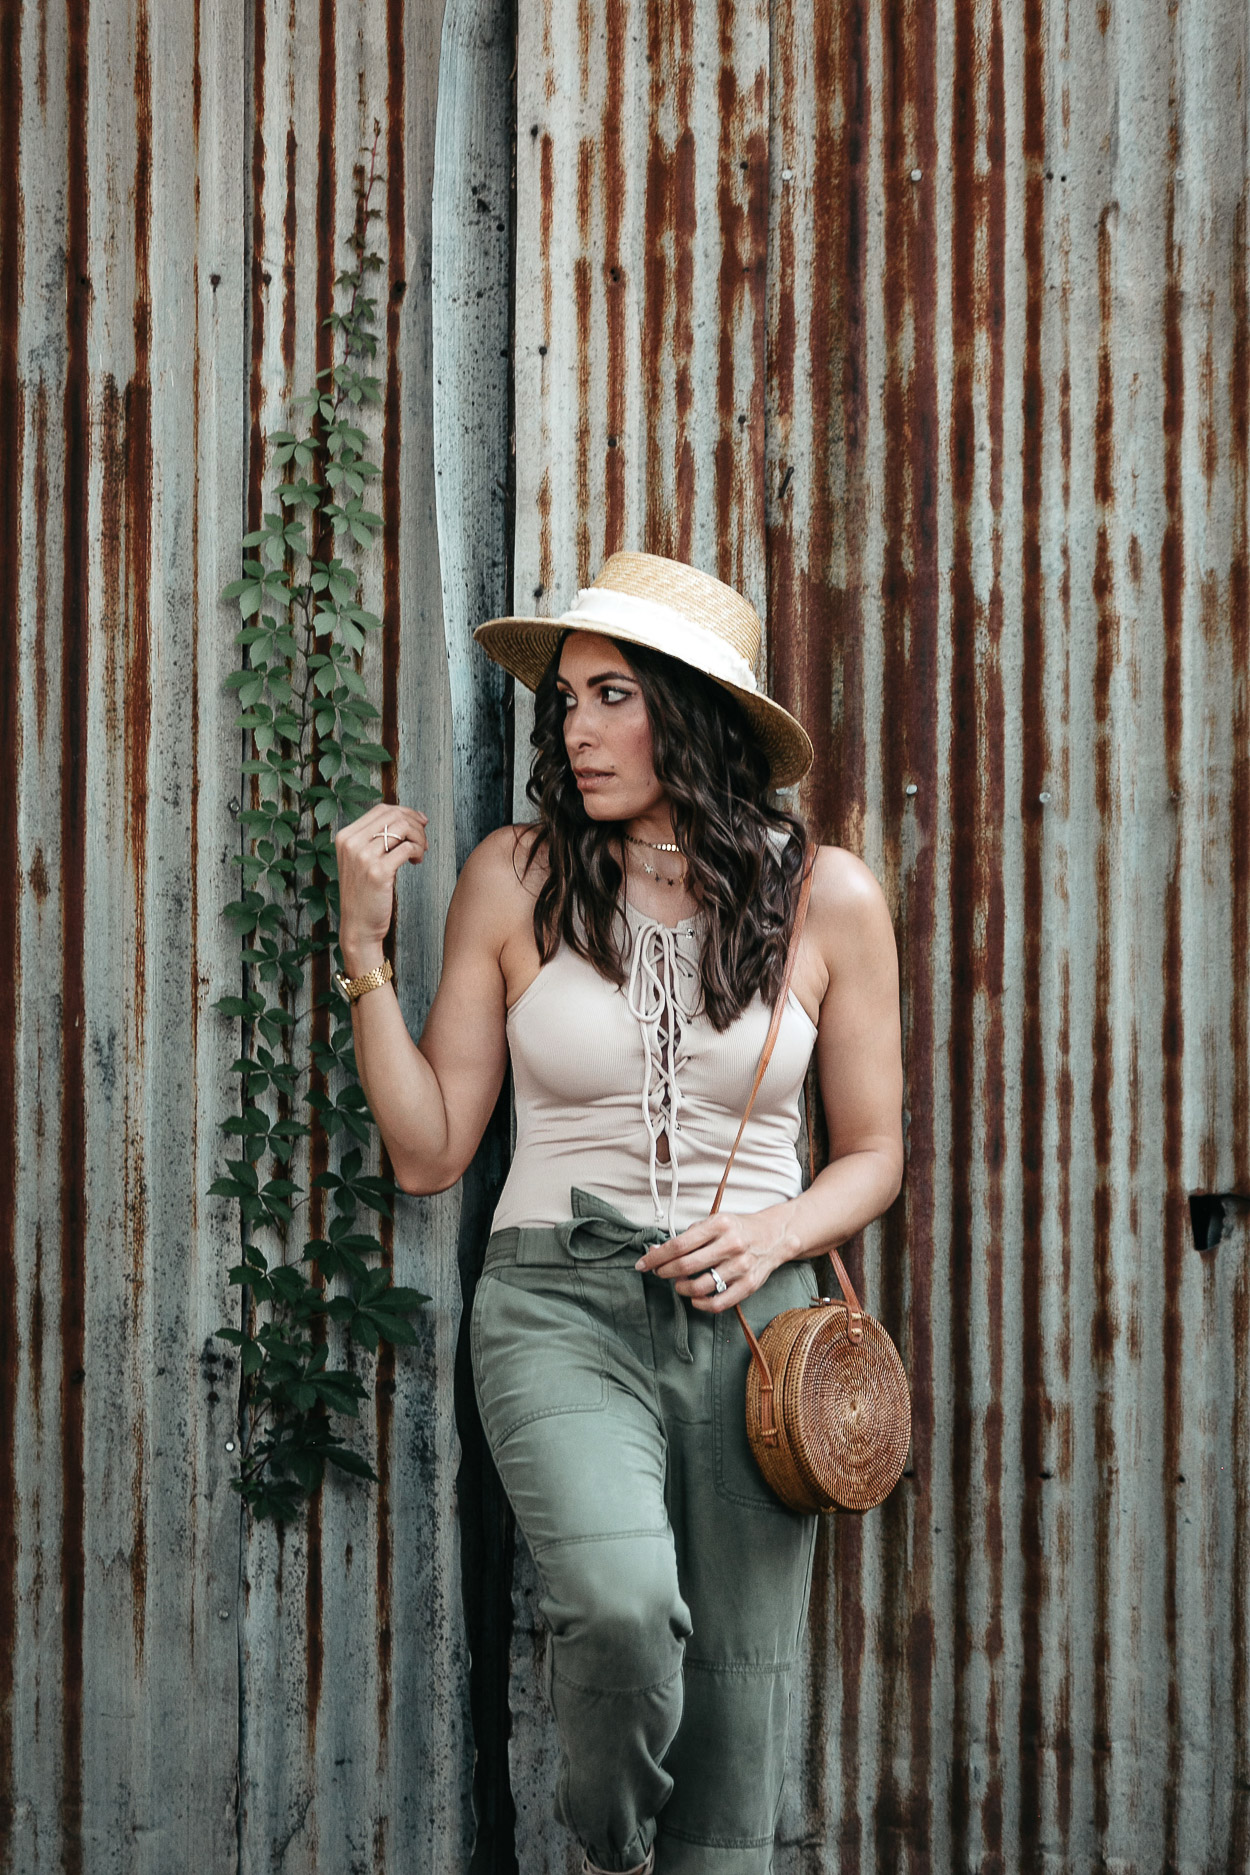 Lace up bodysuit by Tularosa is paired with LOFT cargo pants for a chic Summer look by A Glam Lifestyle blogger Amanda